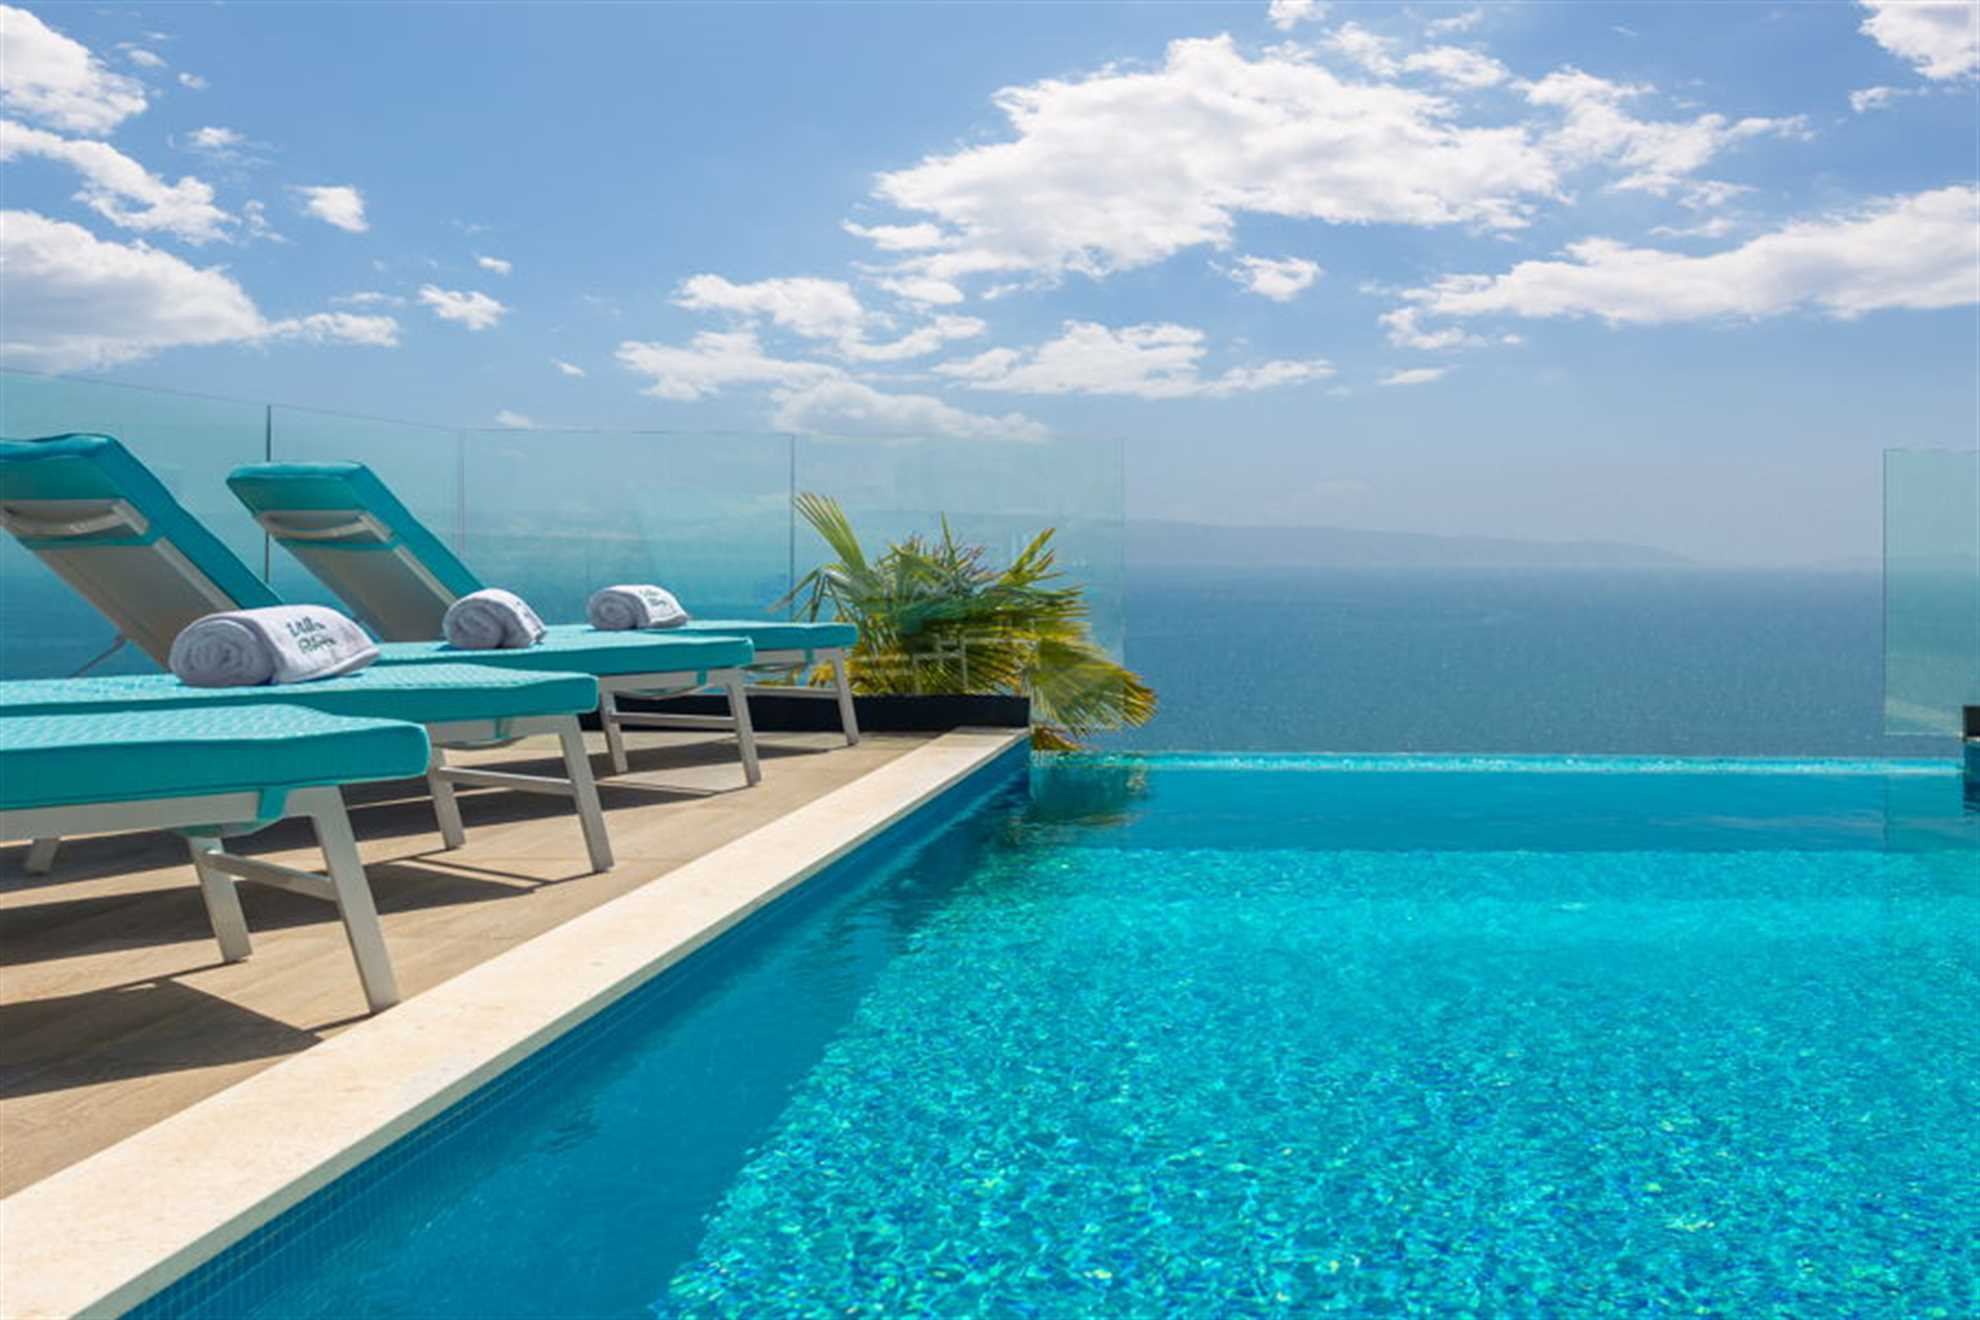 Beautiful sea view from pool terrace equipped with deck chairs